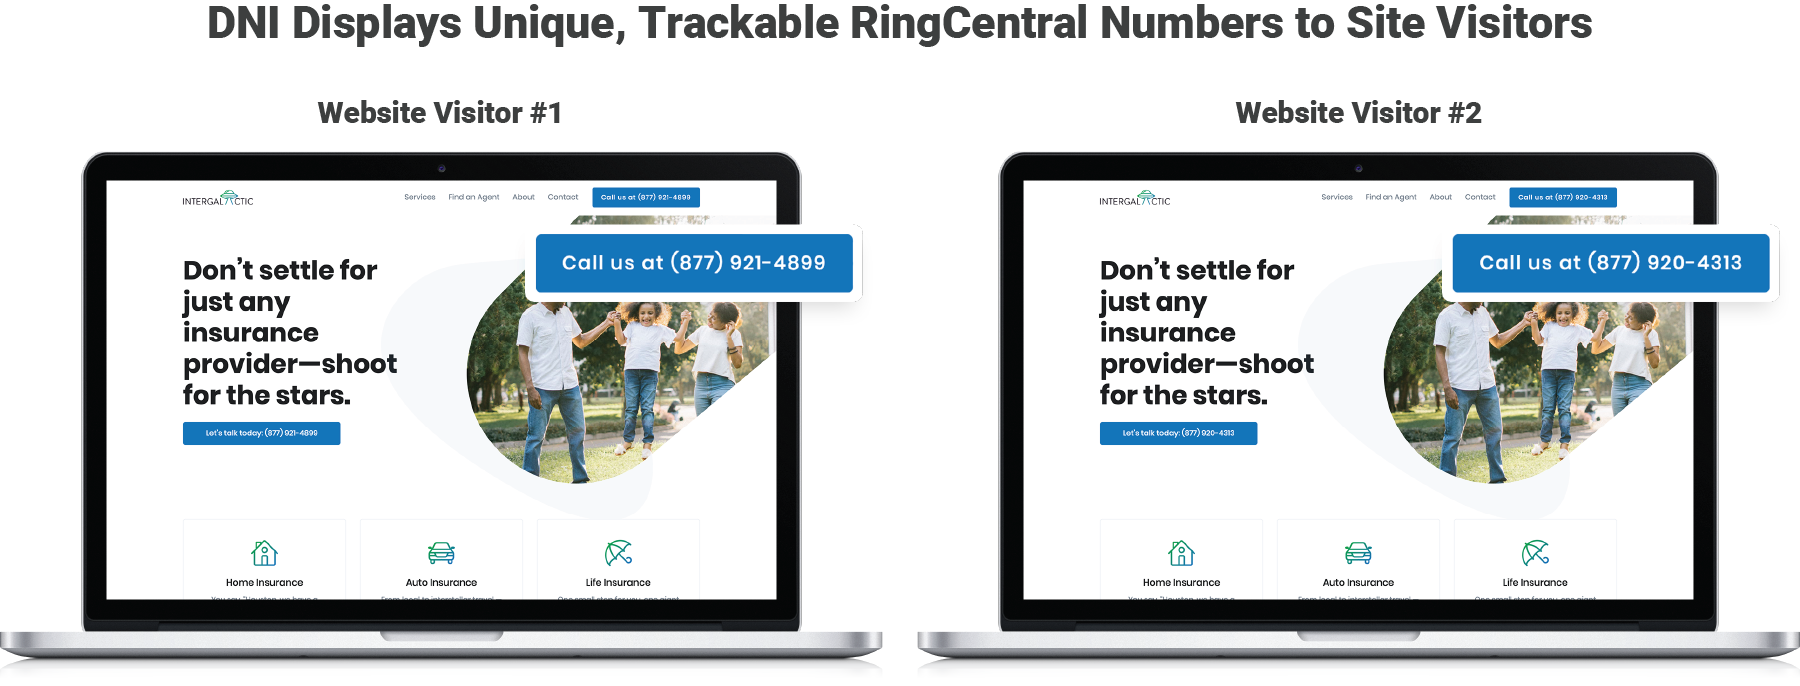 DNI Displays Unique, Trackable, RingCentral Numbers to Site Visitors